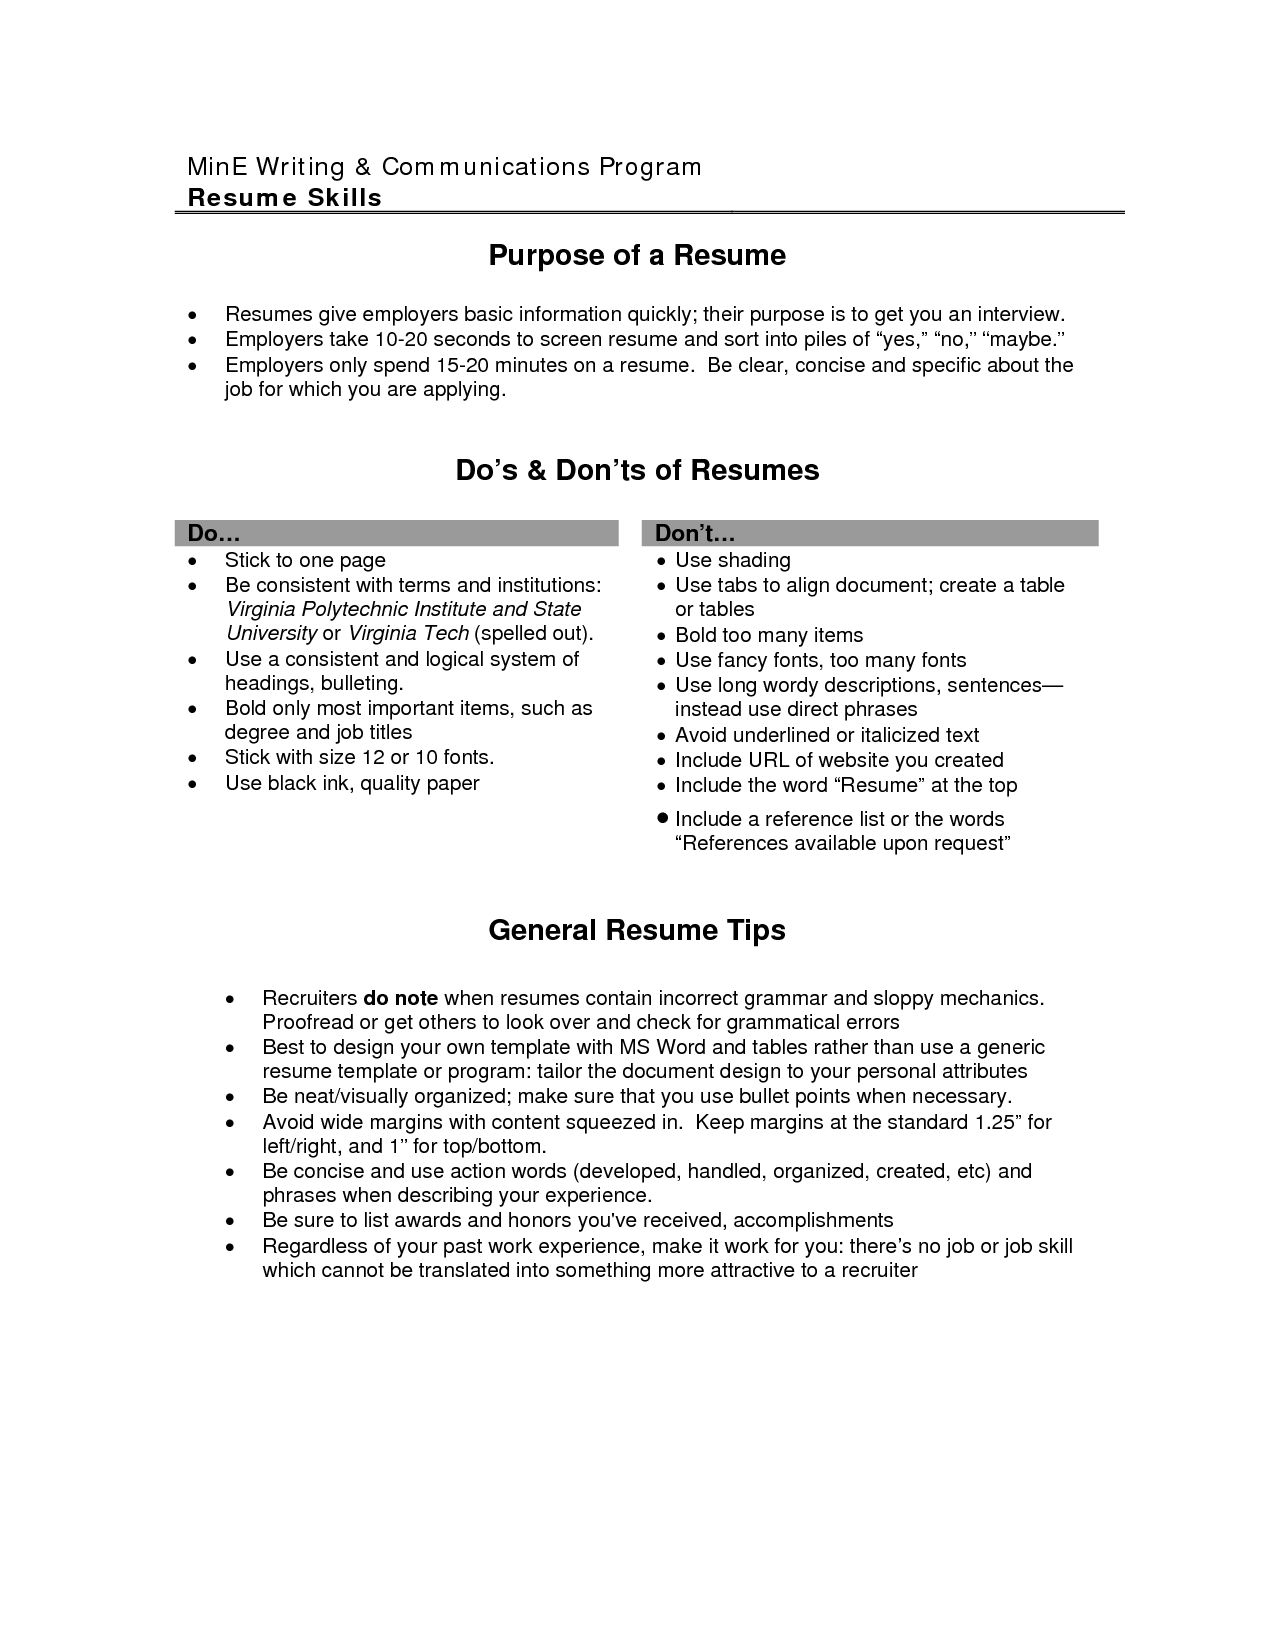 Objectives On A Resume Top Resume Skills Entry Level Template The Create Your Building